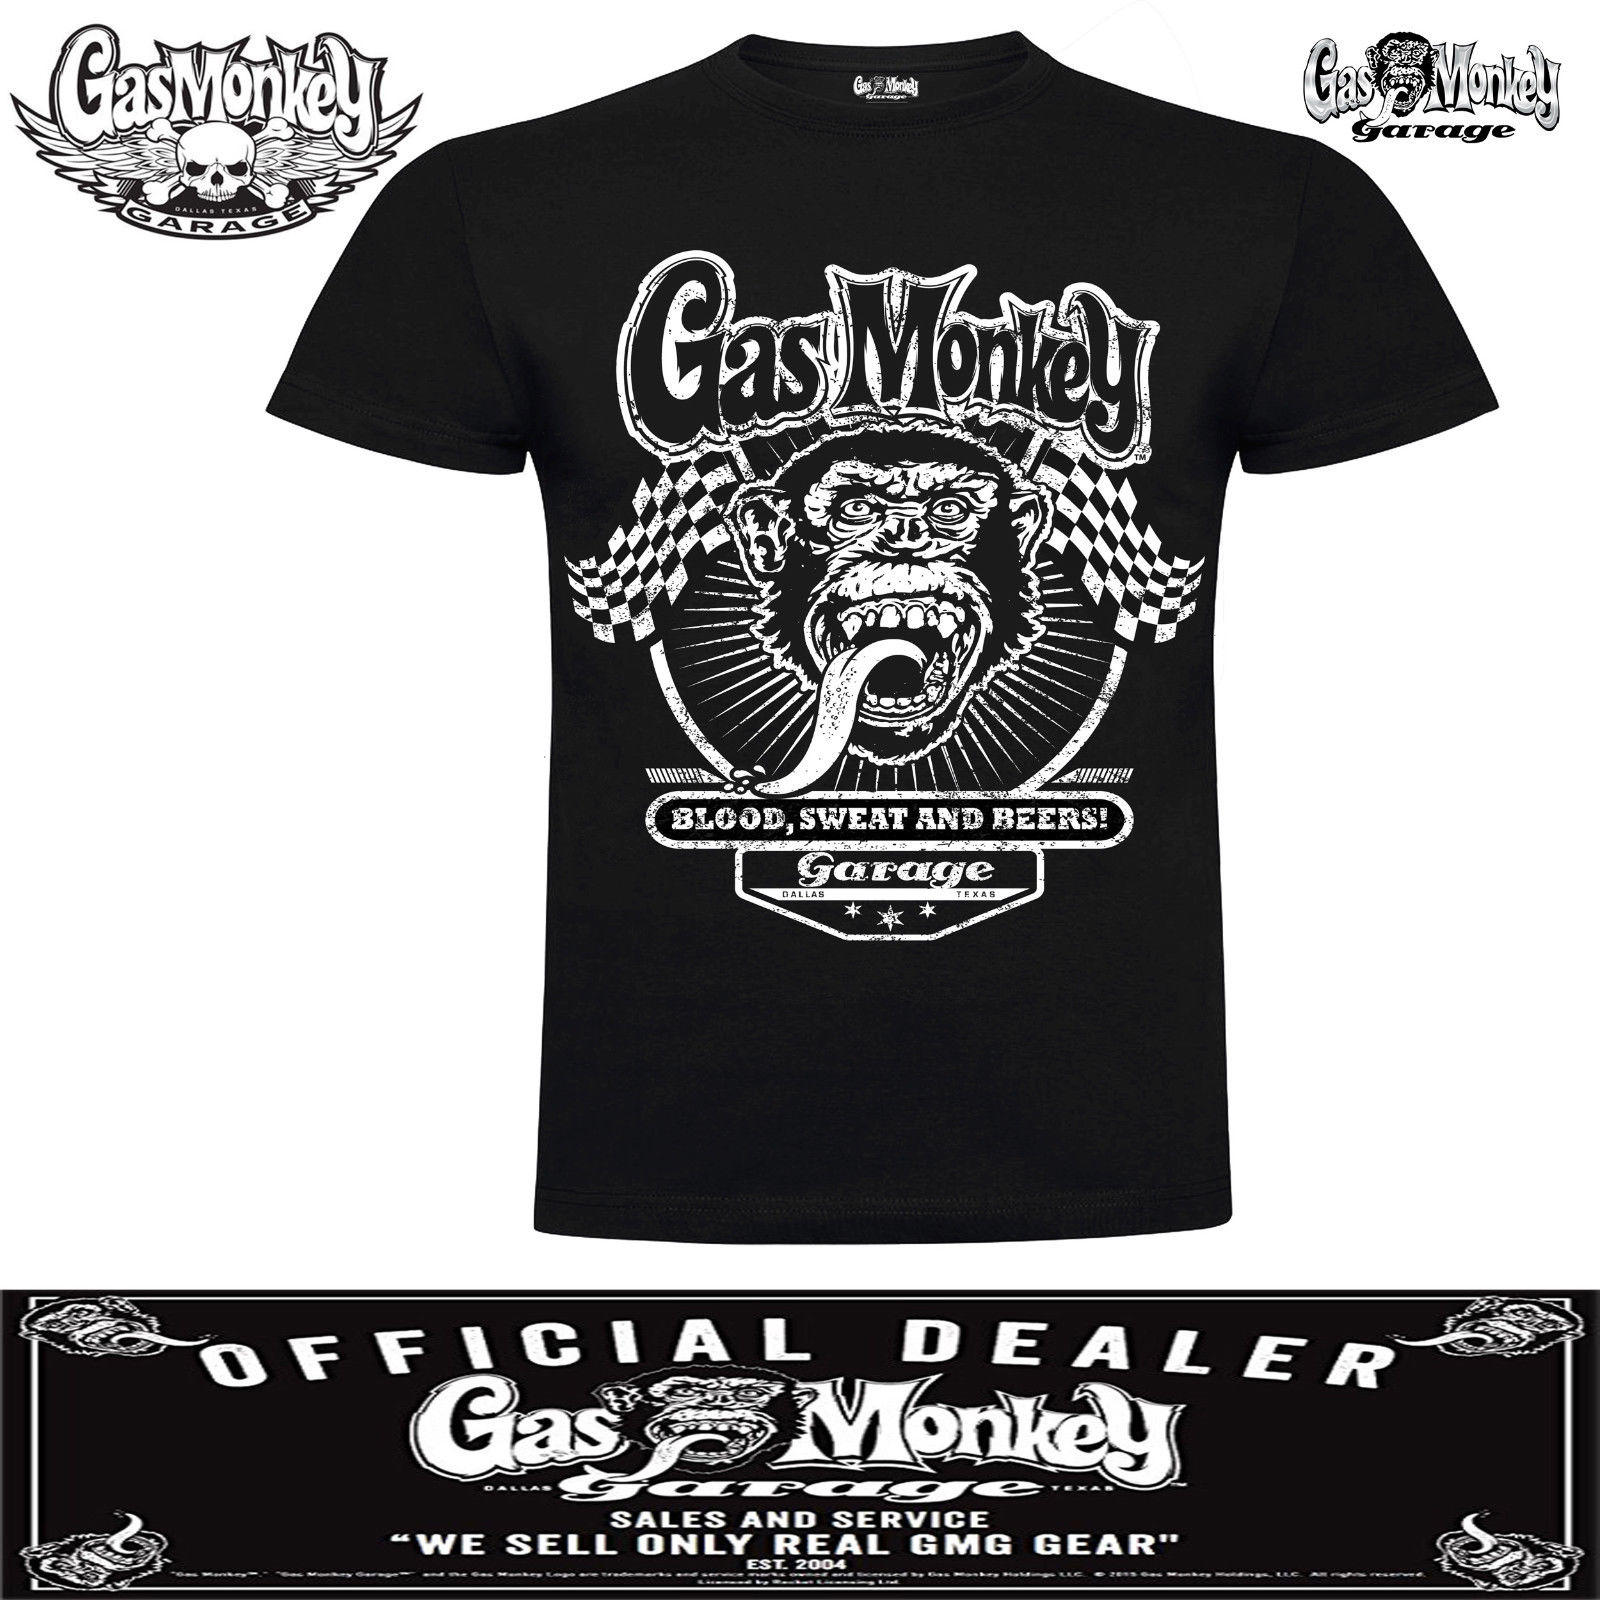 New Mens Official Licensed Gas Monkey Muscle Car T-Shirt